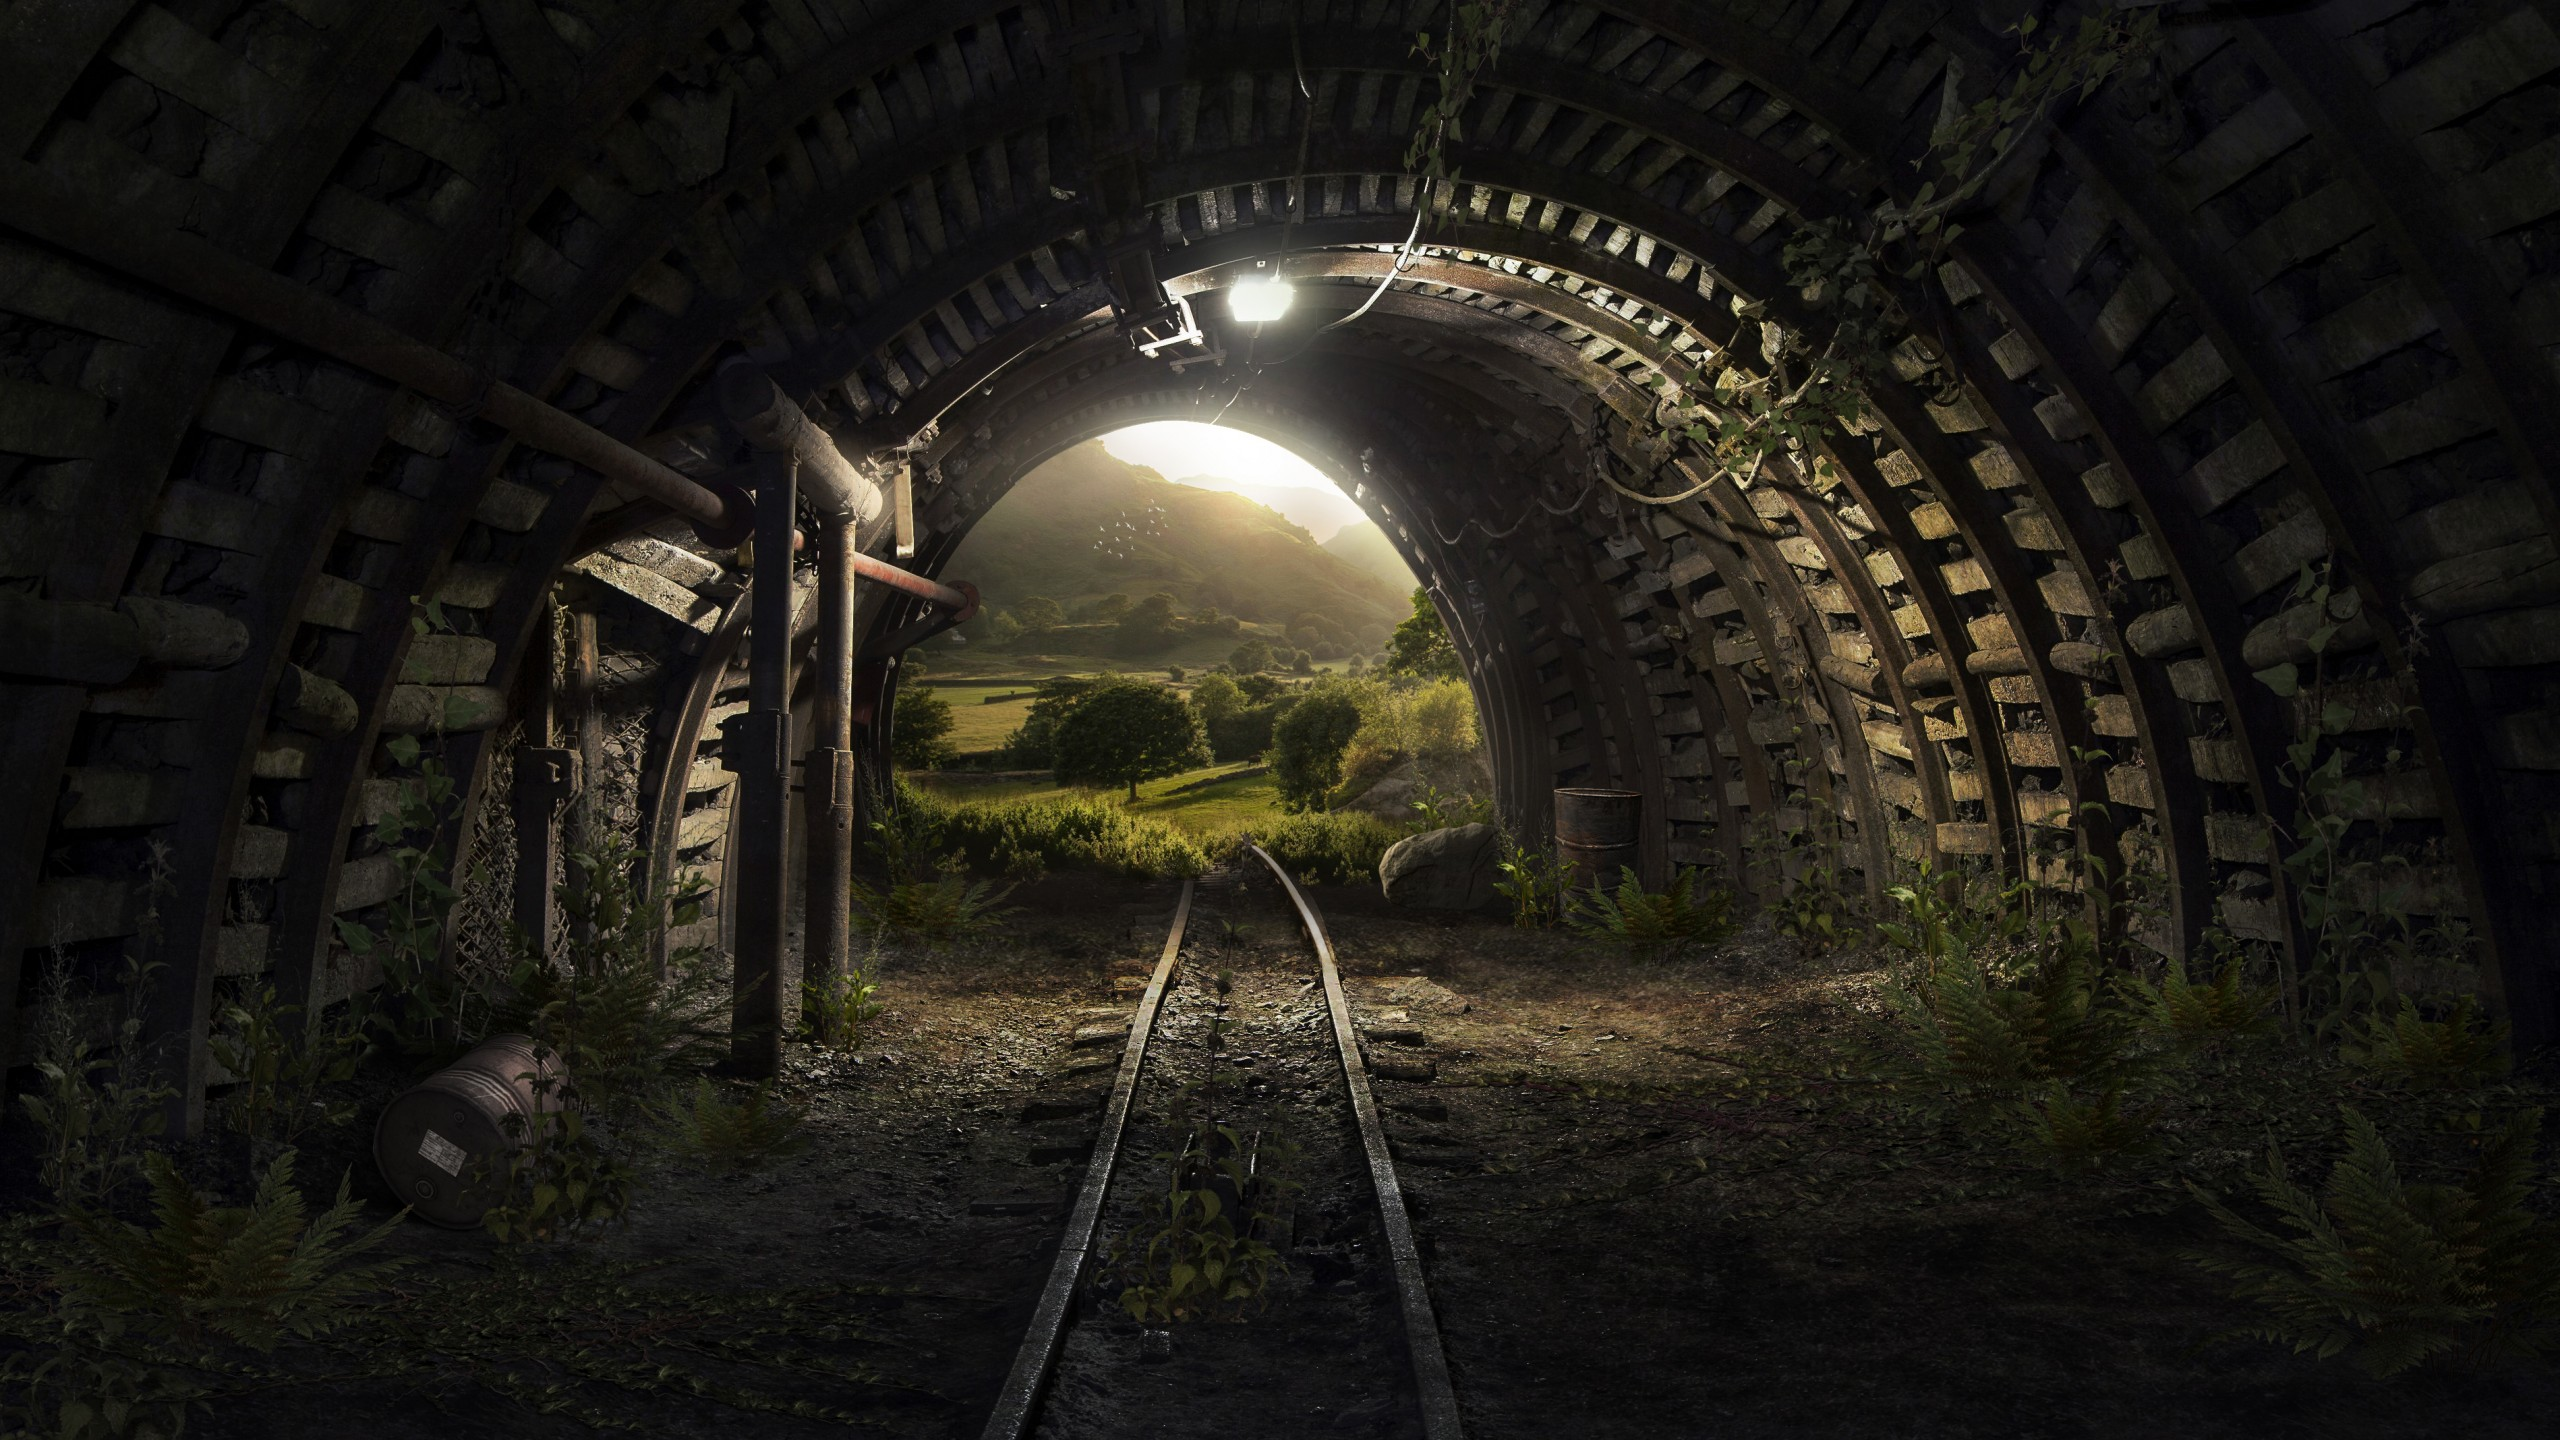 Stock Images Tunnel Nature 4k Stock Images 15560